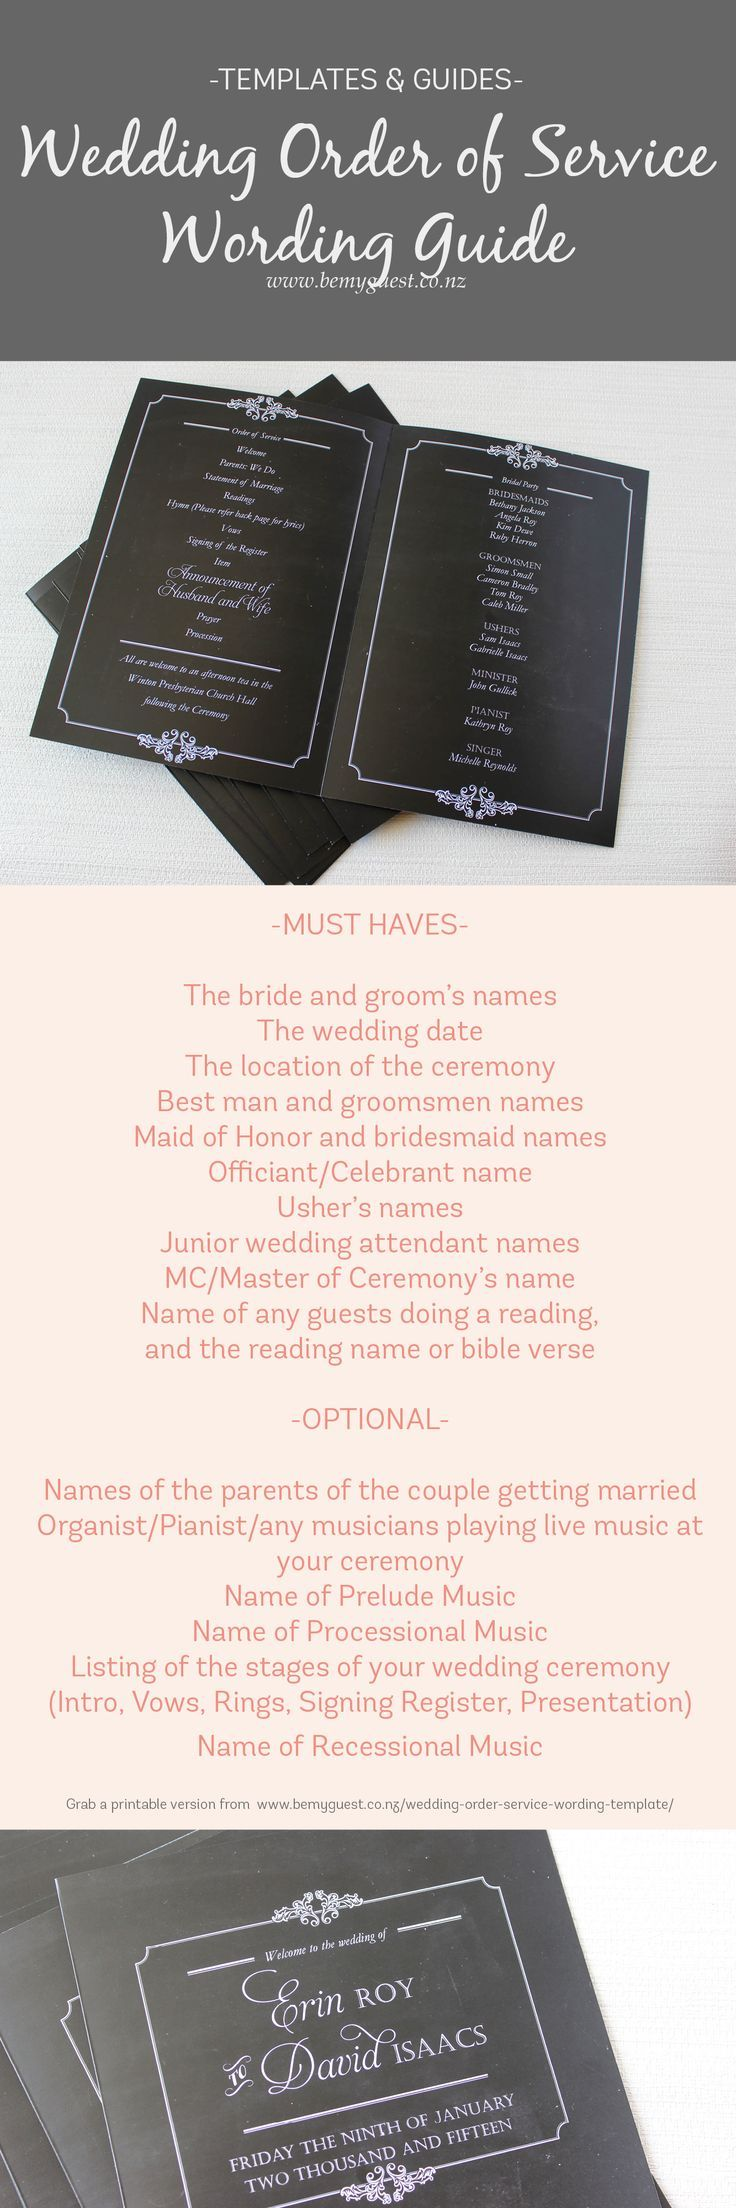 wedding order of service wording template what to include examples wedding order template. Black Bedroom Furniture Sets. Home Design Ideas